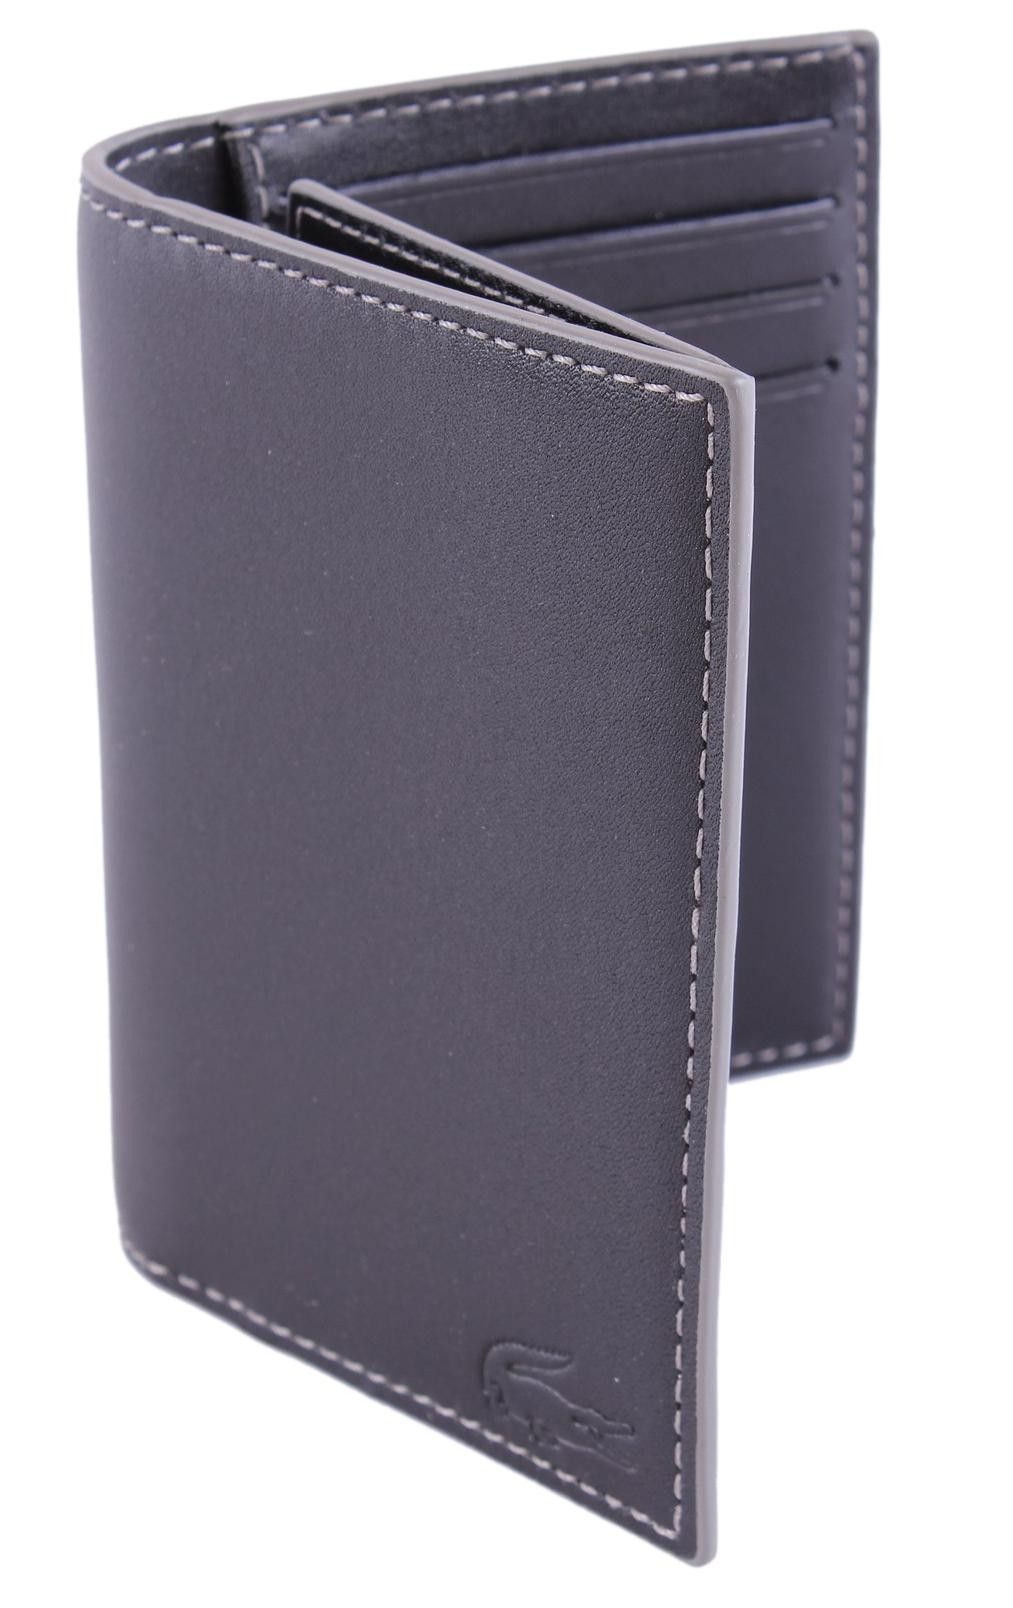 Lacoste wallet black business card holder lacoste mens wallet lacoste wallet black business card holder lacoste mens wallet magicingreecefo Image collections